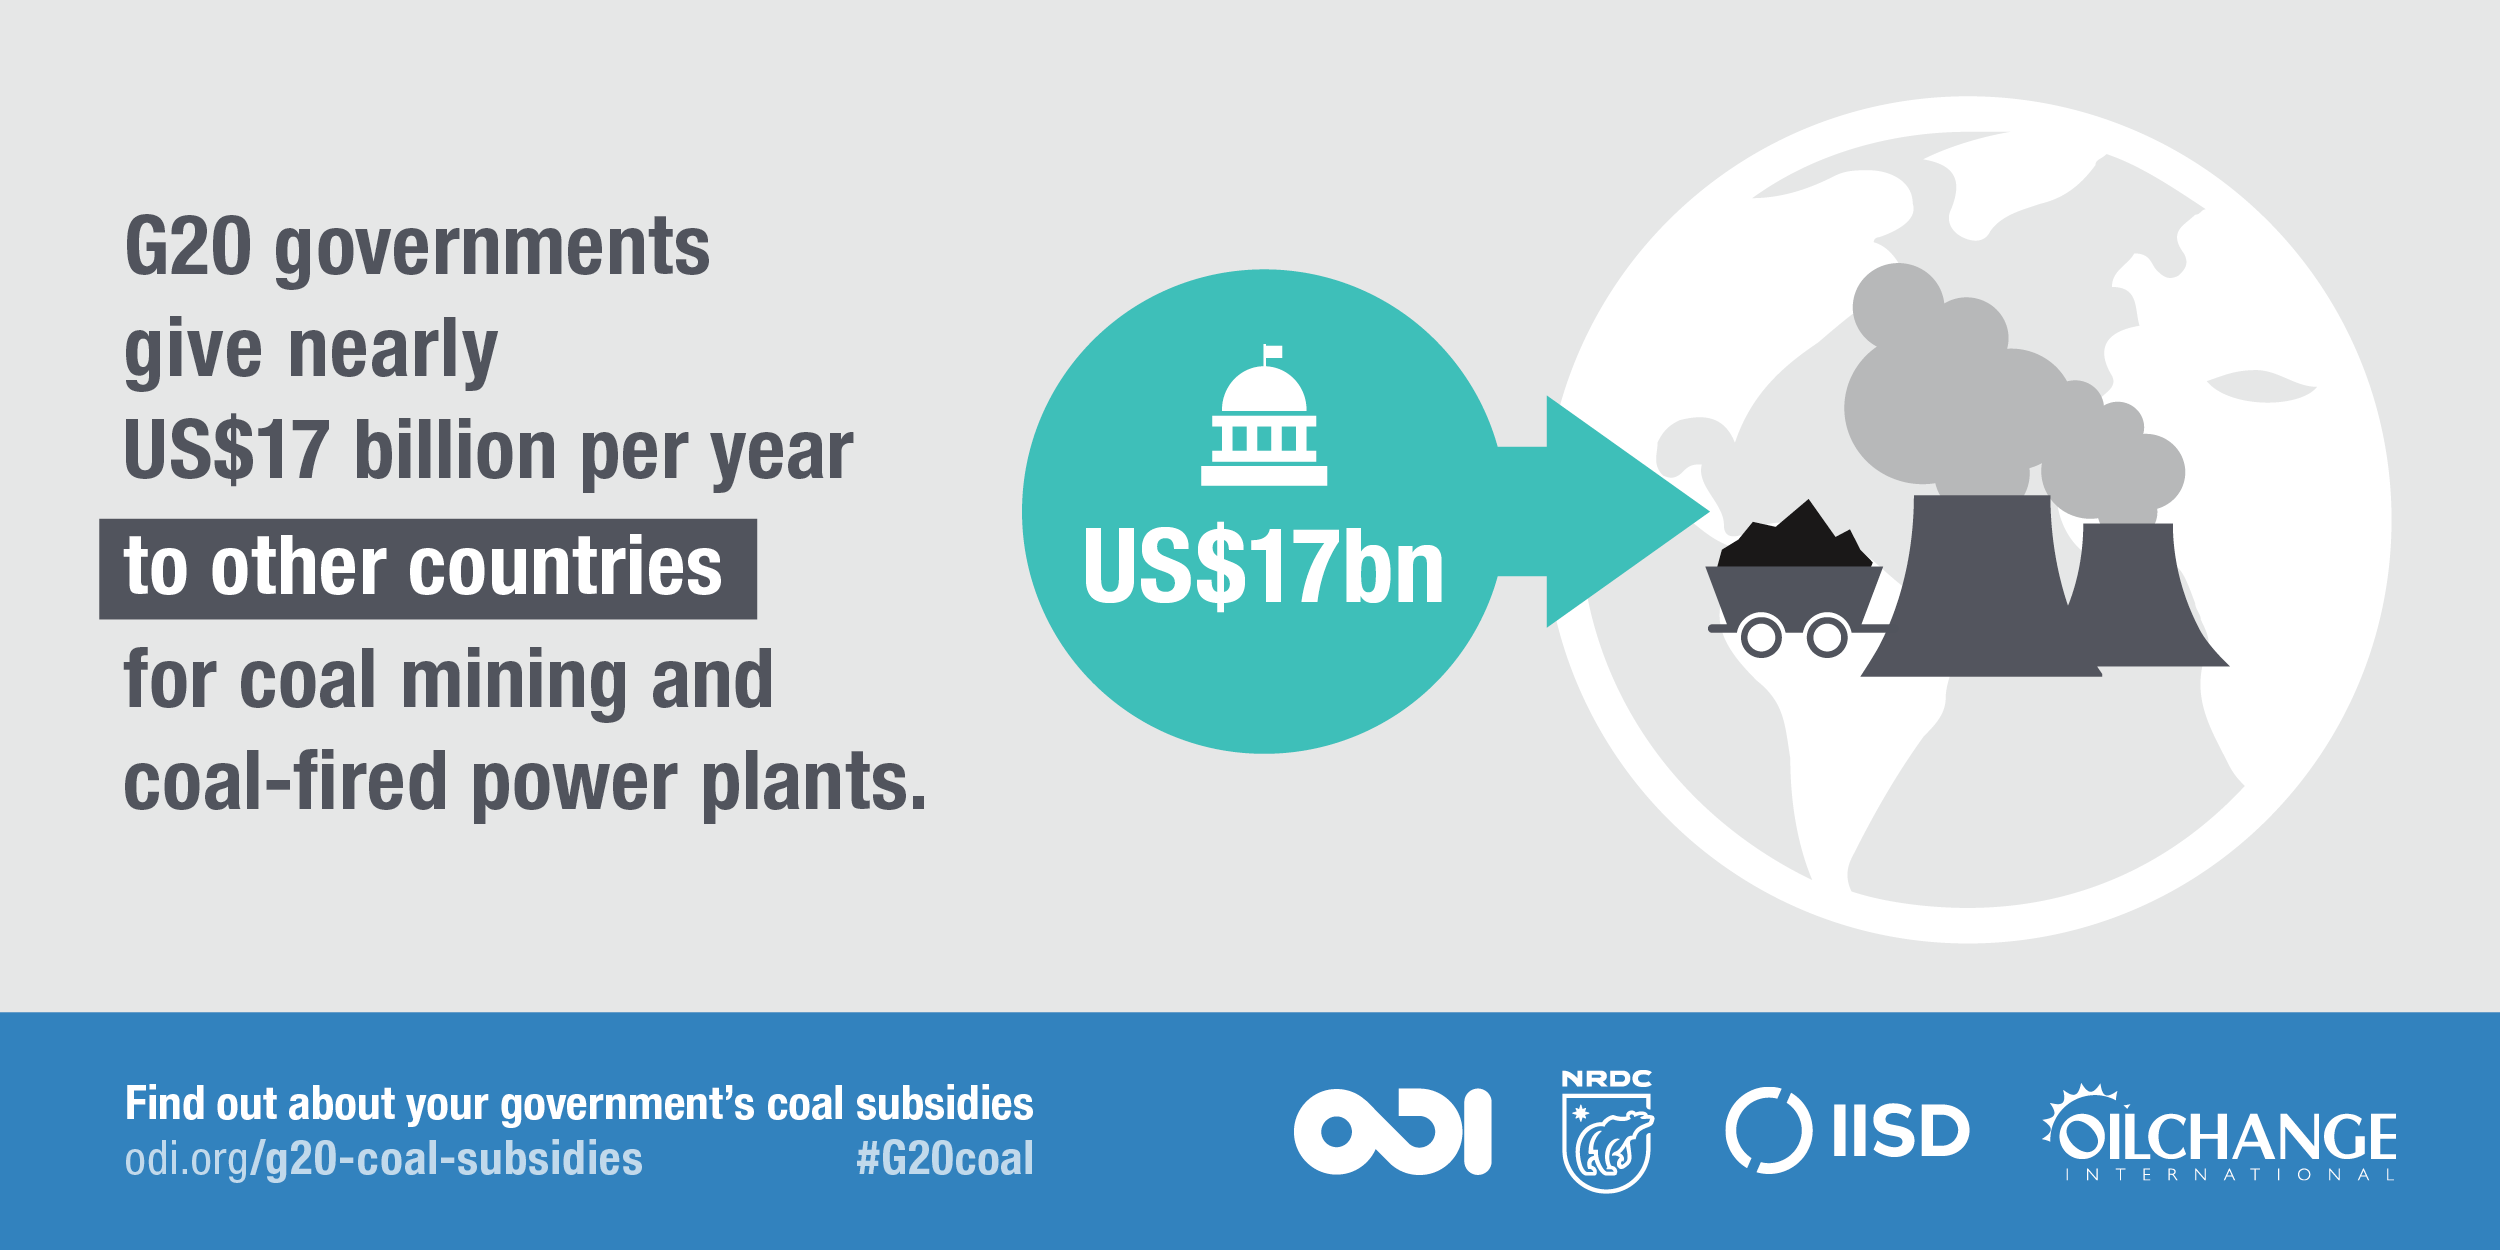 G20 governments give nearly US$17billion per year to other countries for coal mining and coal-fired power plants. Image: ODI